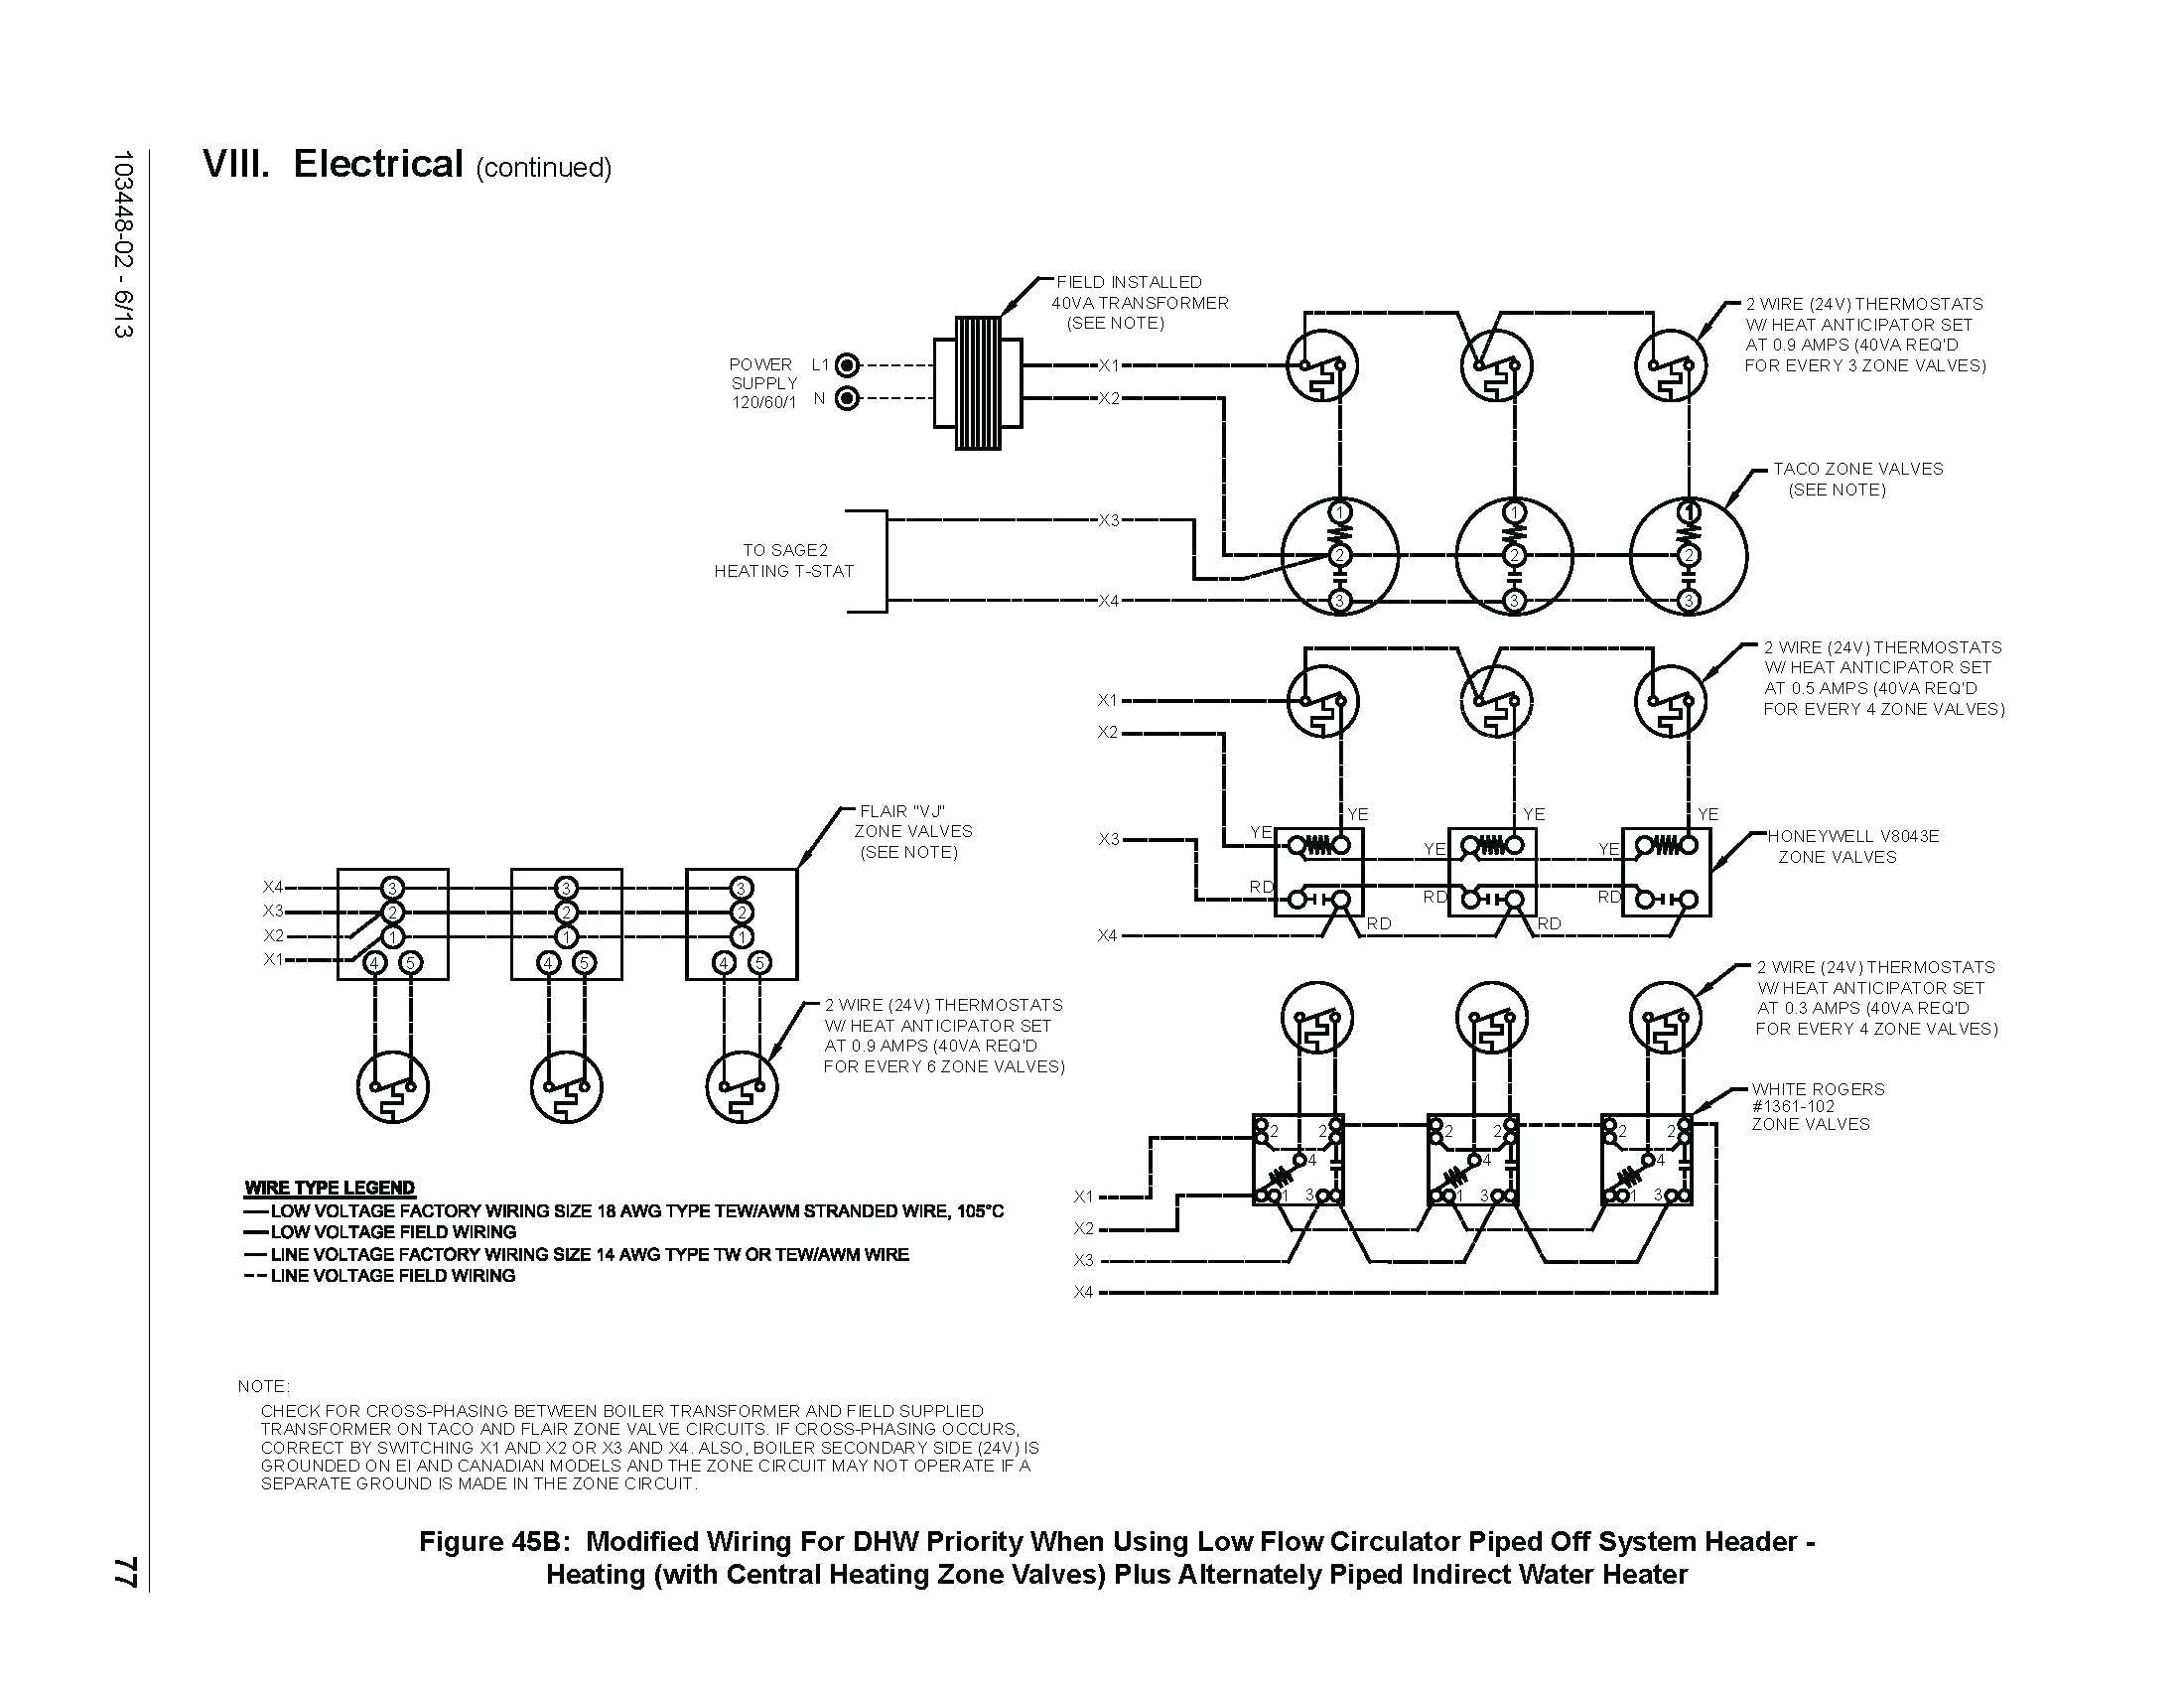 Diagram of car heating system wiring diagram for immersion heater diagram of car heating system wiring diagram for immersion heater copy central heating thermostat asfbconference2016 Images